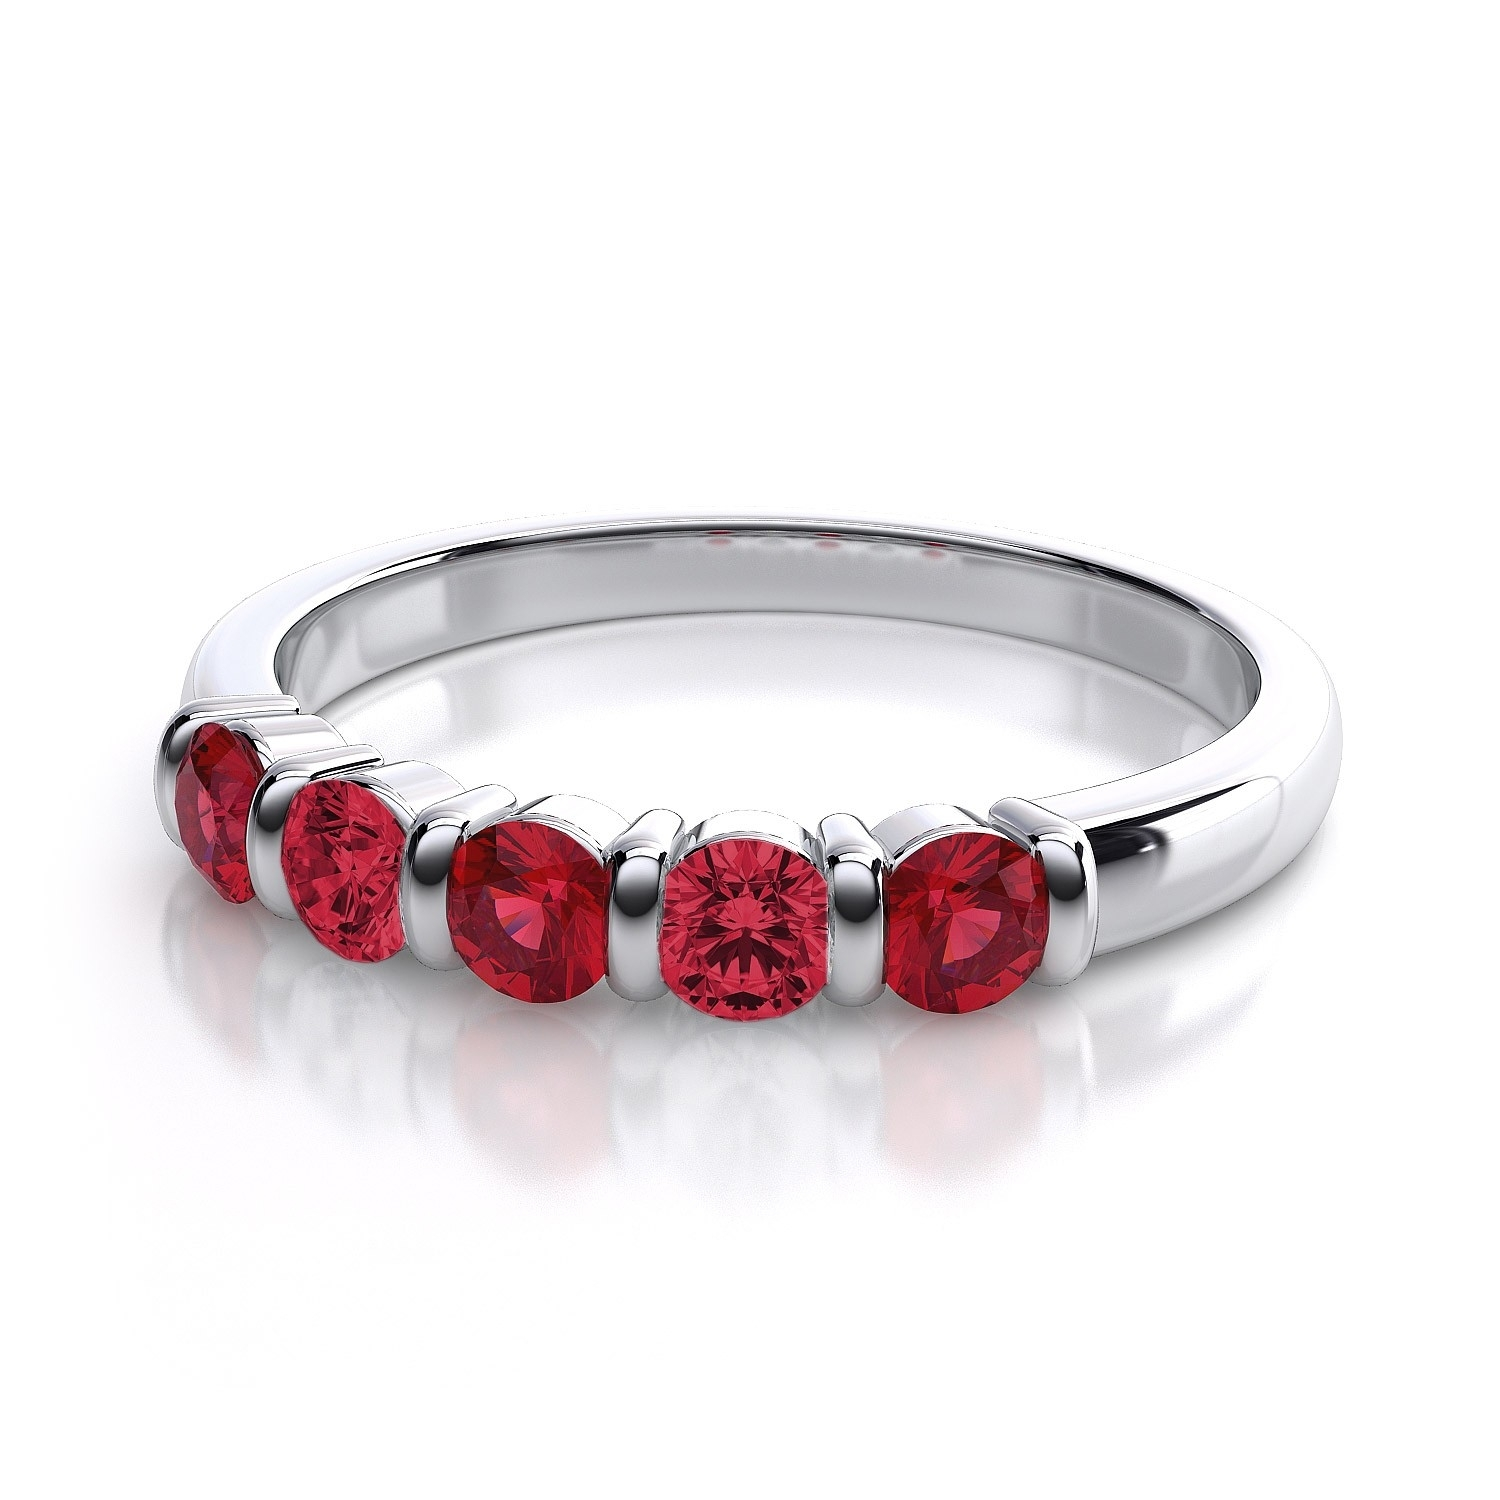 0.50 Carat Five Stone Ruby And Diamond Ring In 14K White Gold I1 I With 2018 Ruby And Diamond Five Stone Anniversary Bands In 14K White Gold (Gallery 6 of 15)